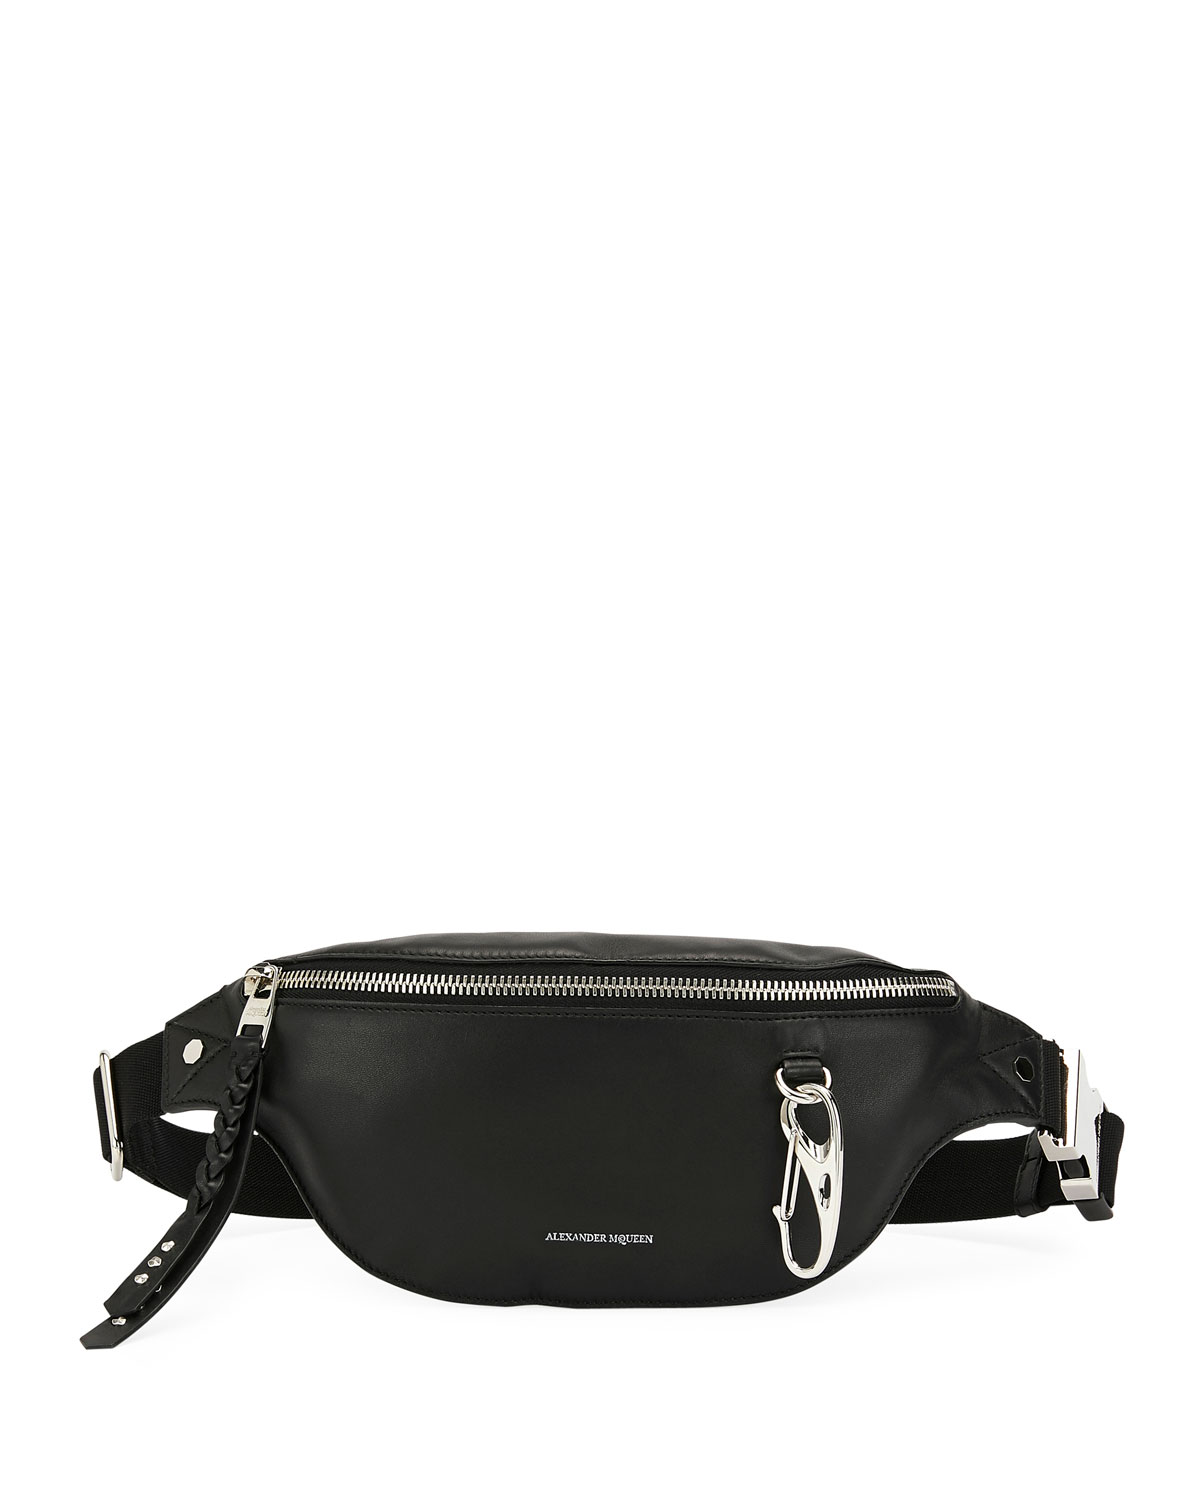 fe6aee81 Alexander McQueen Men's Mini Leather Belt Bag/Fanny Pack | Neiman Marcus